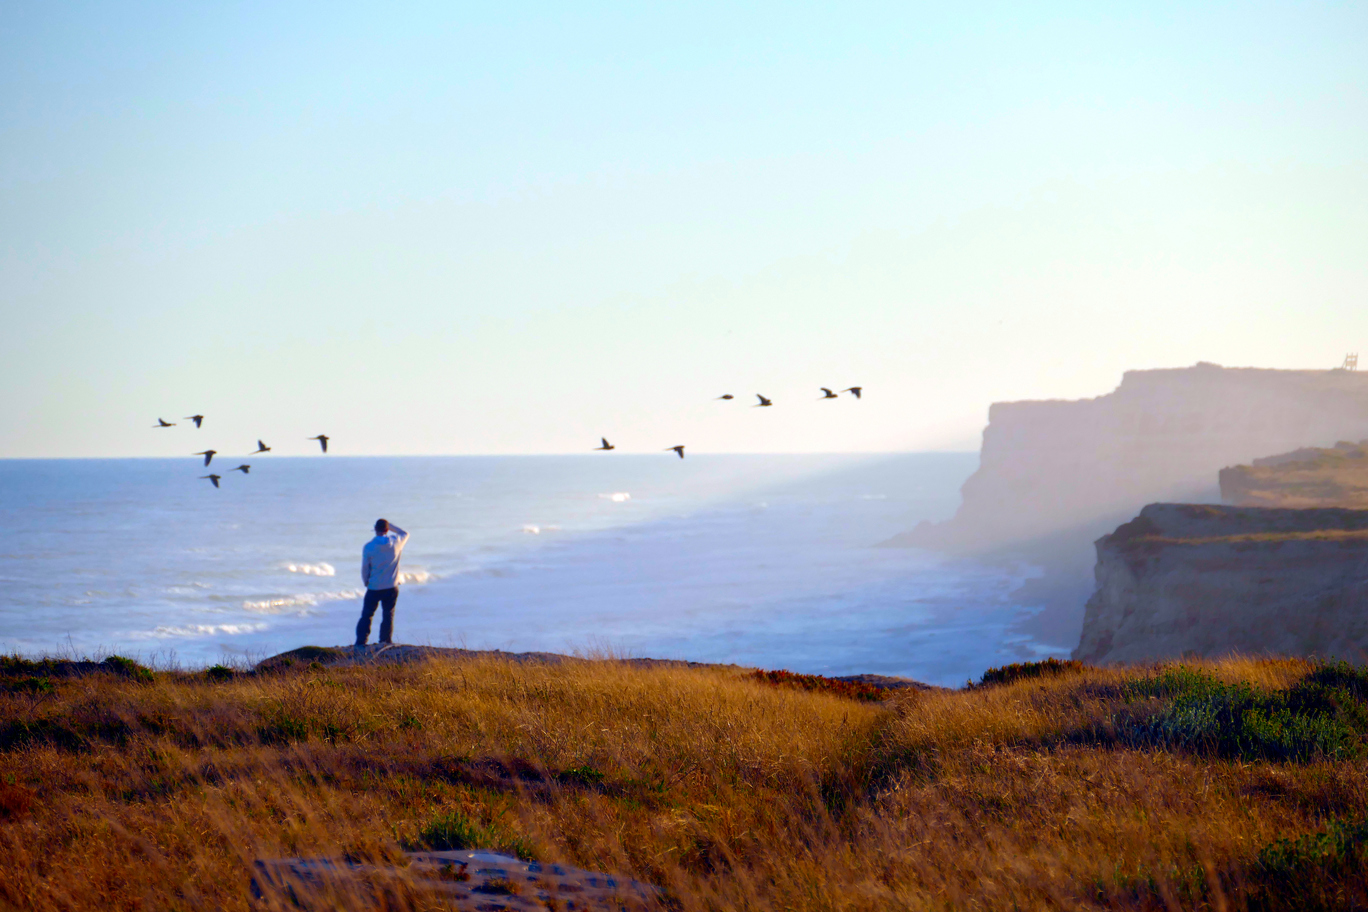 Alwin on the Argentinian coast watching birds overlanding holiday